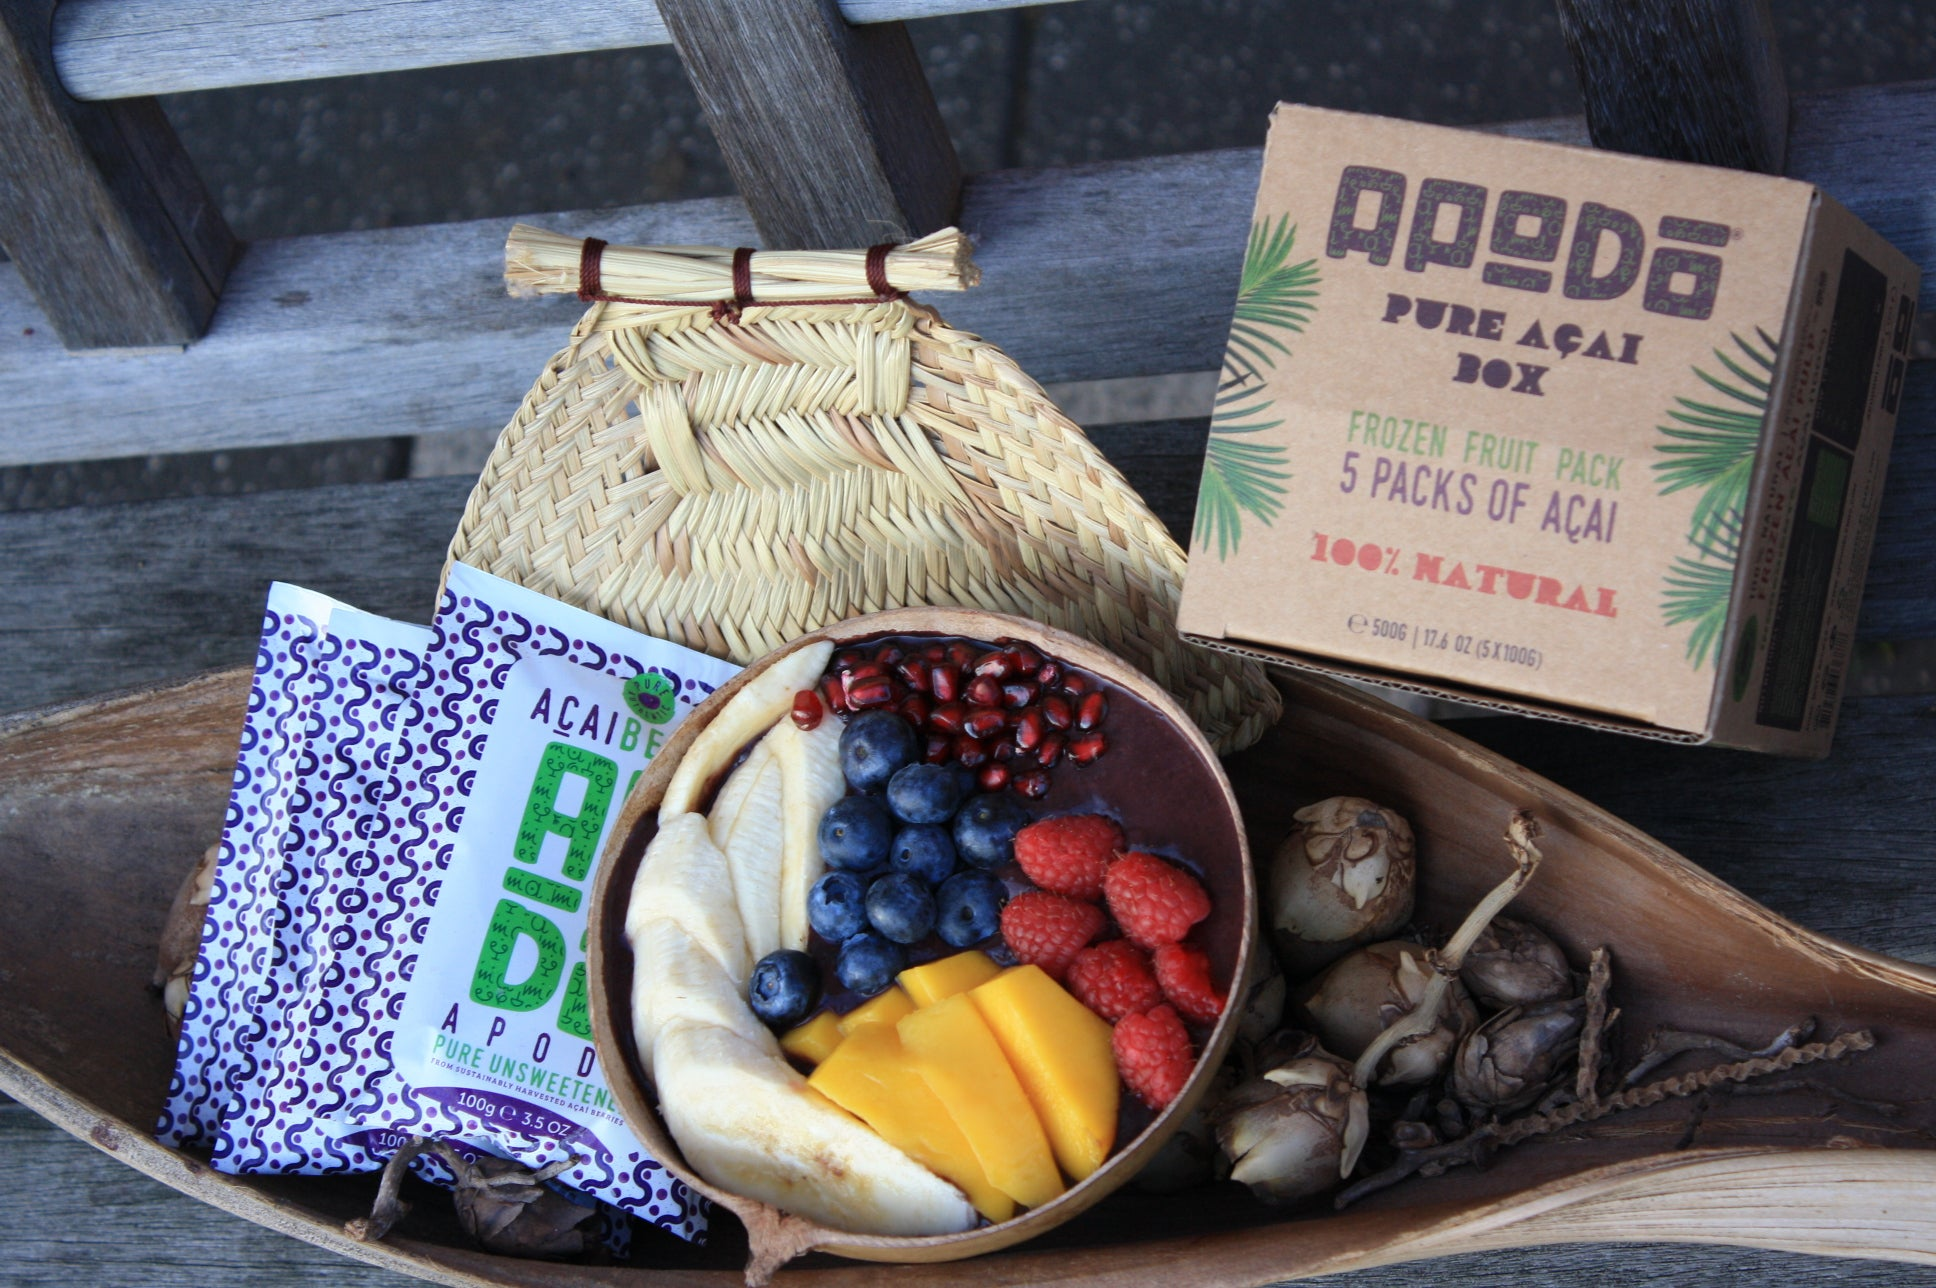 Pure Açai Box